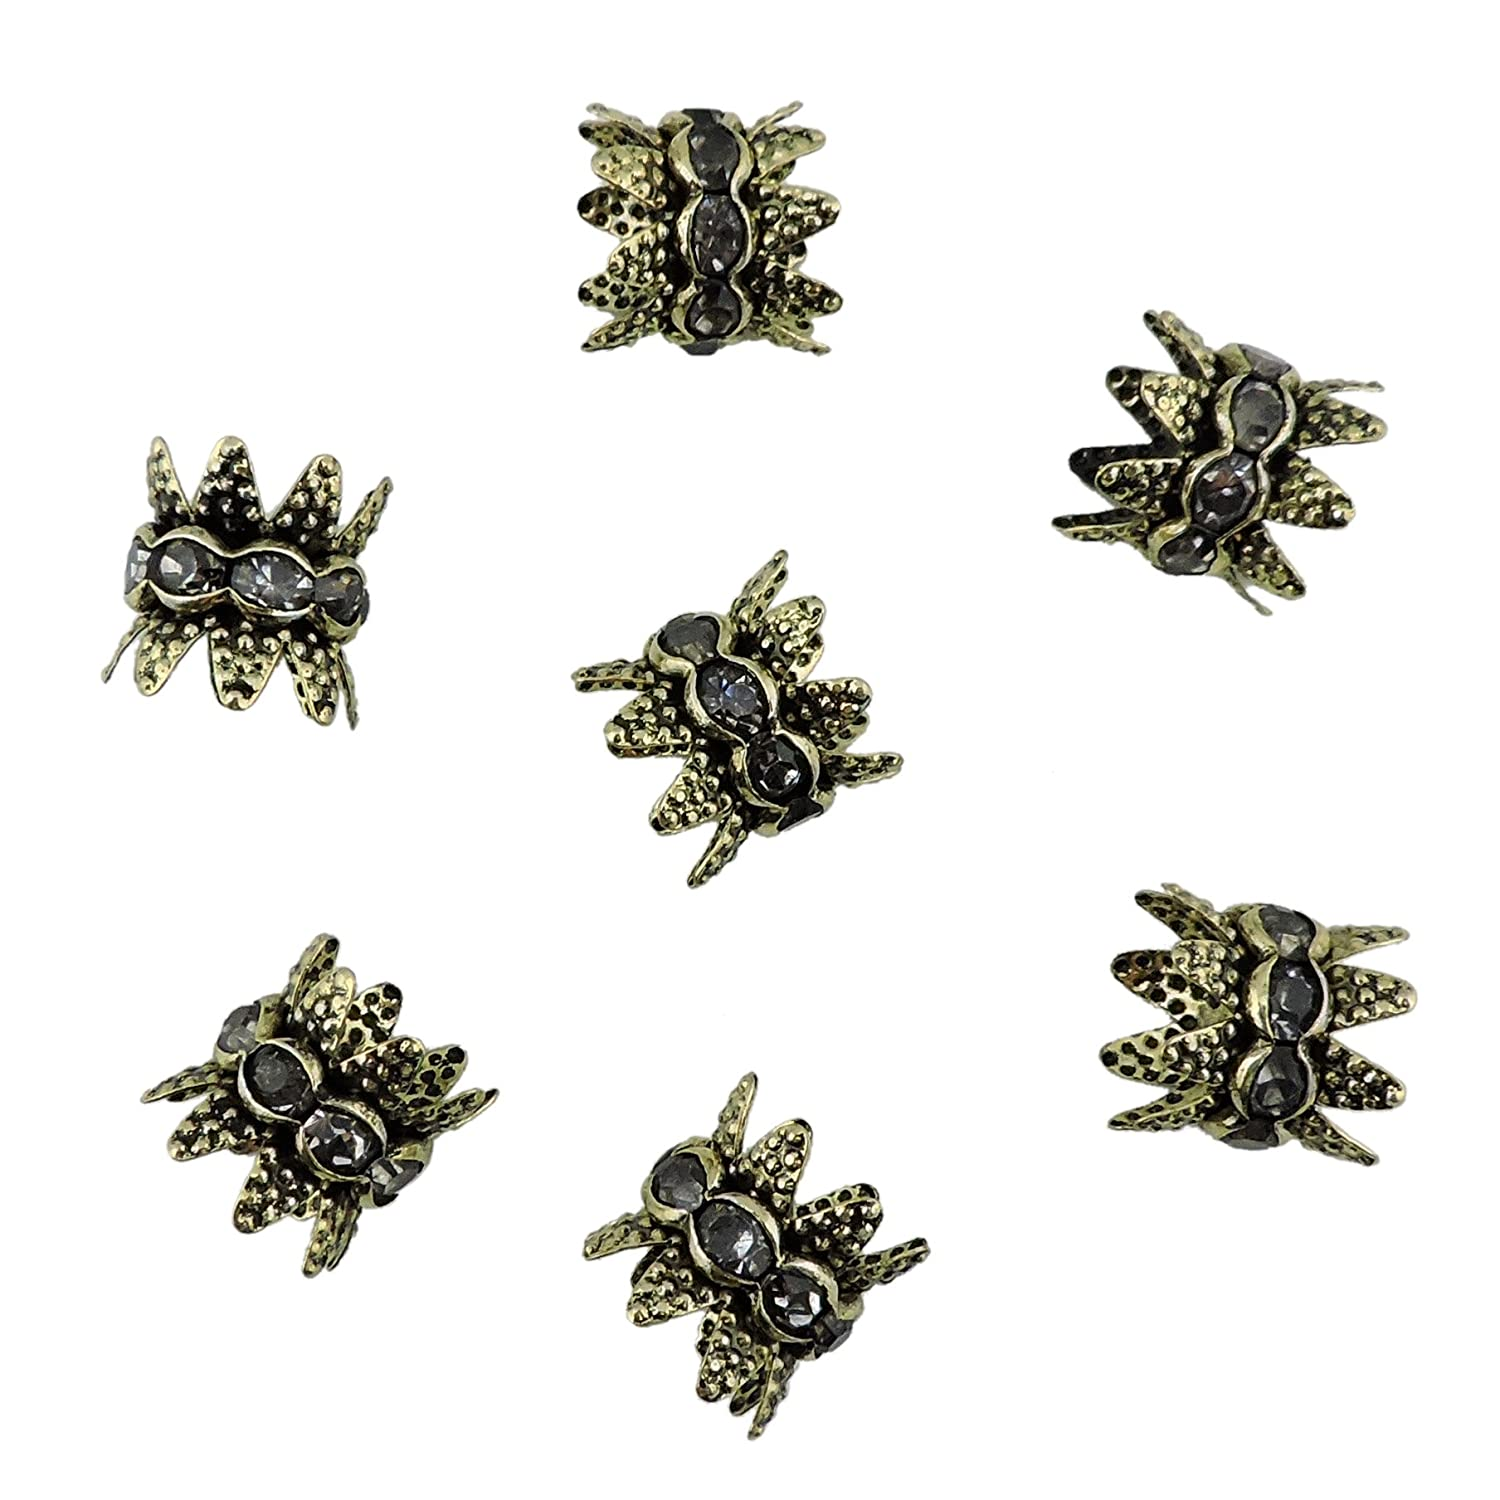 30PCS 10mm Double Beads Caps With Rhinestone Filigree Flower Cup for Jewelry Making DIY (HT-1000-6) Coiris